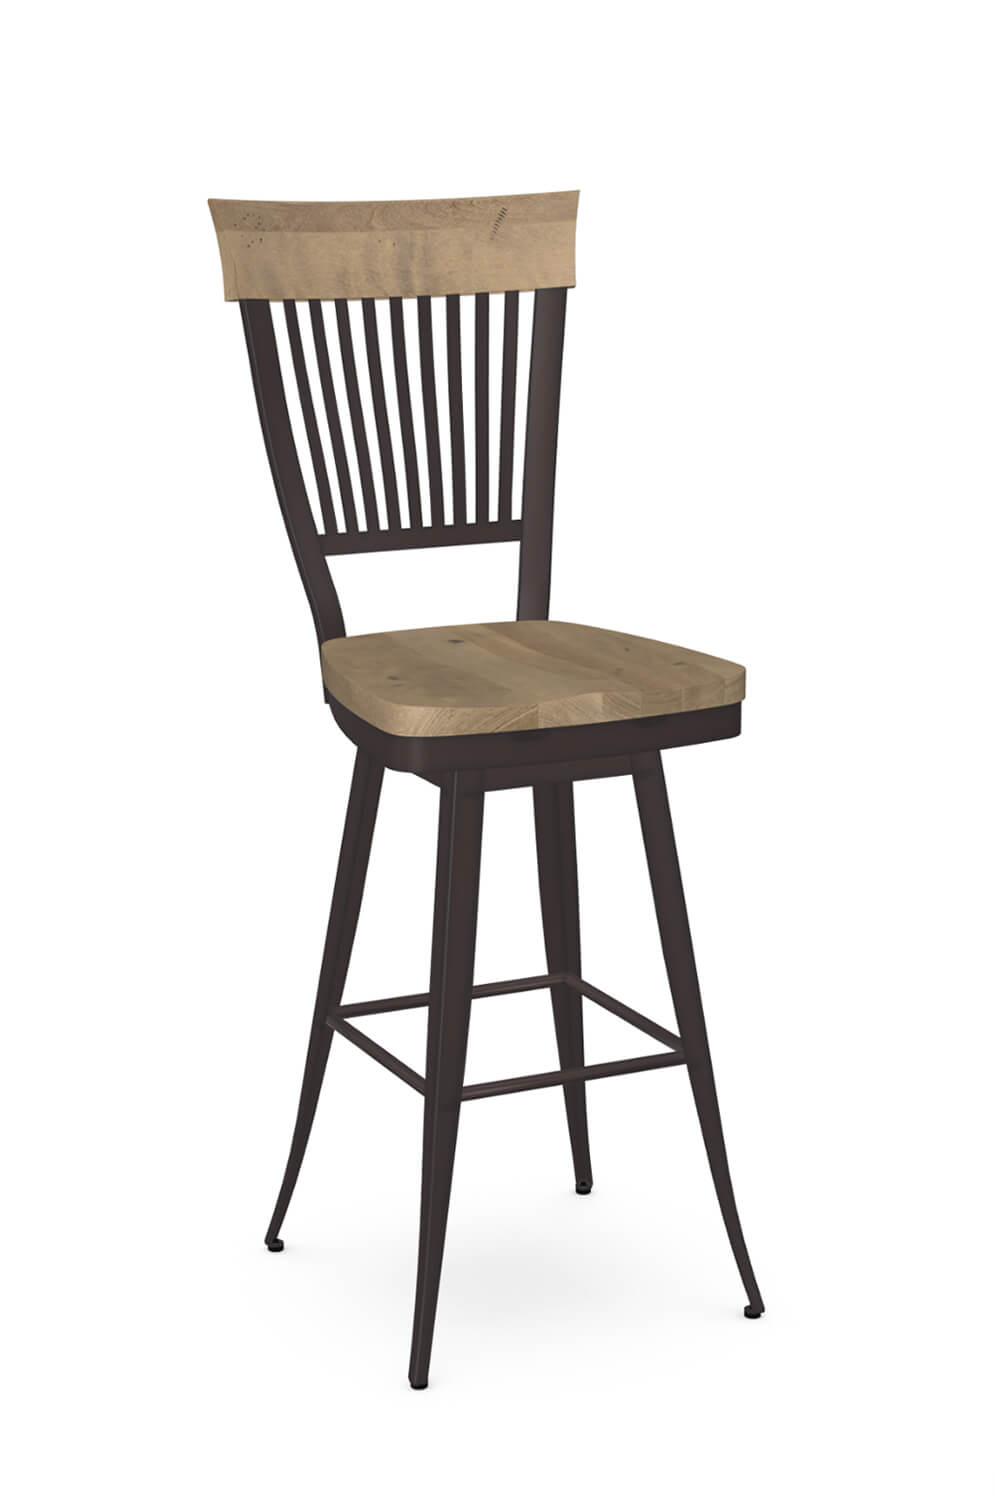 Annabelle Swivel Stool with Metal Frame, Distressed Wood Trim on Back and Seat